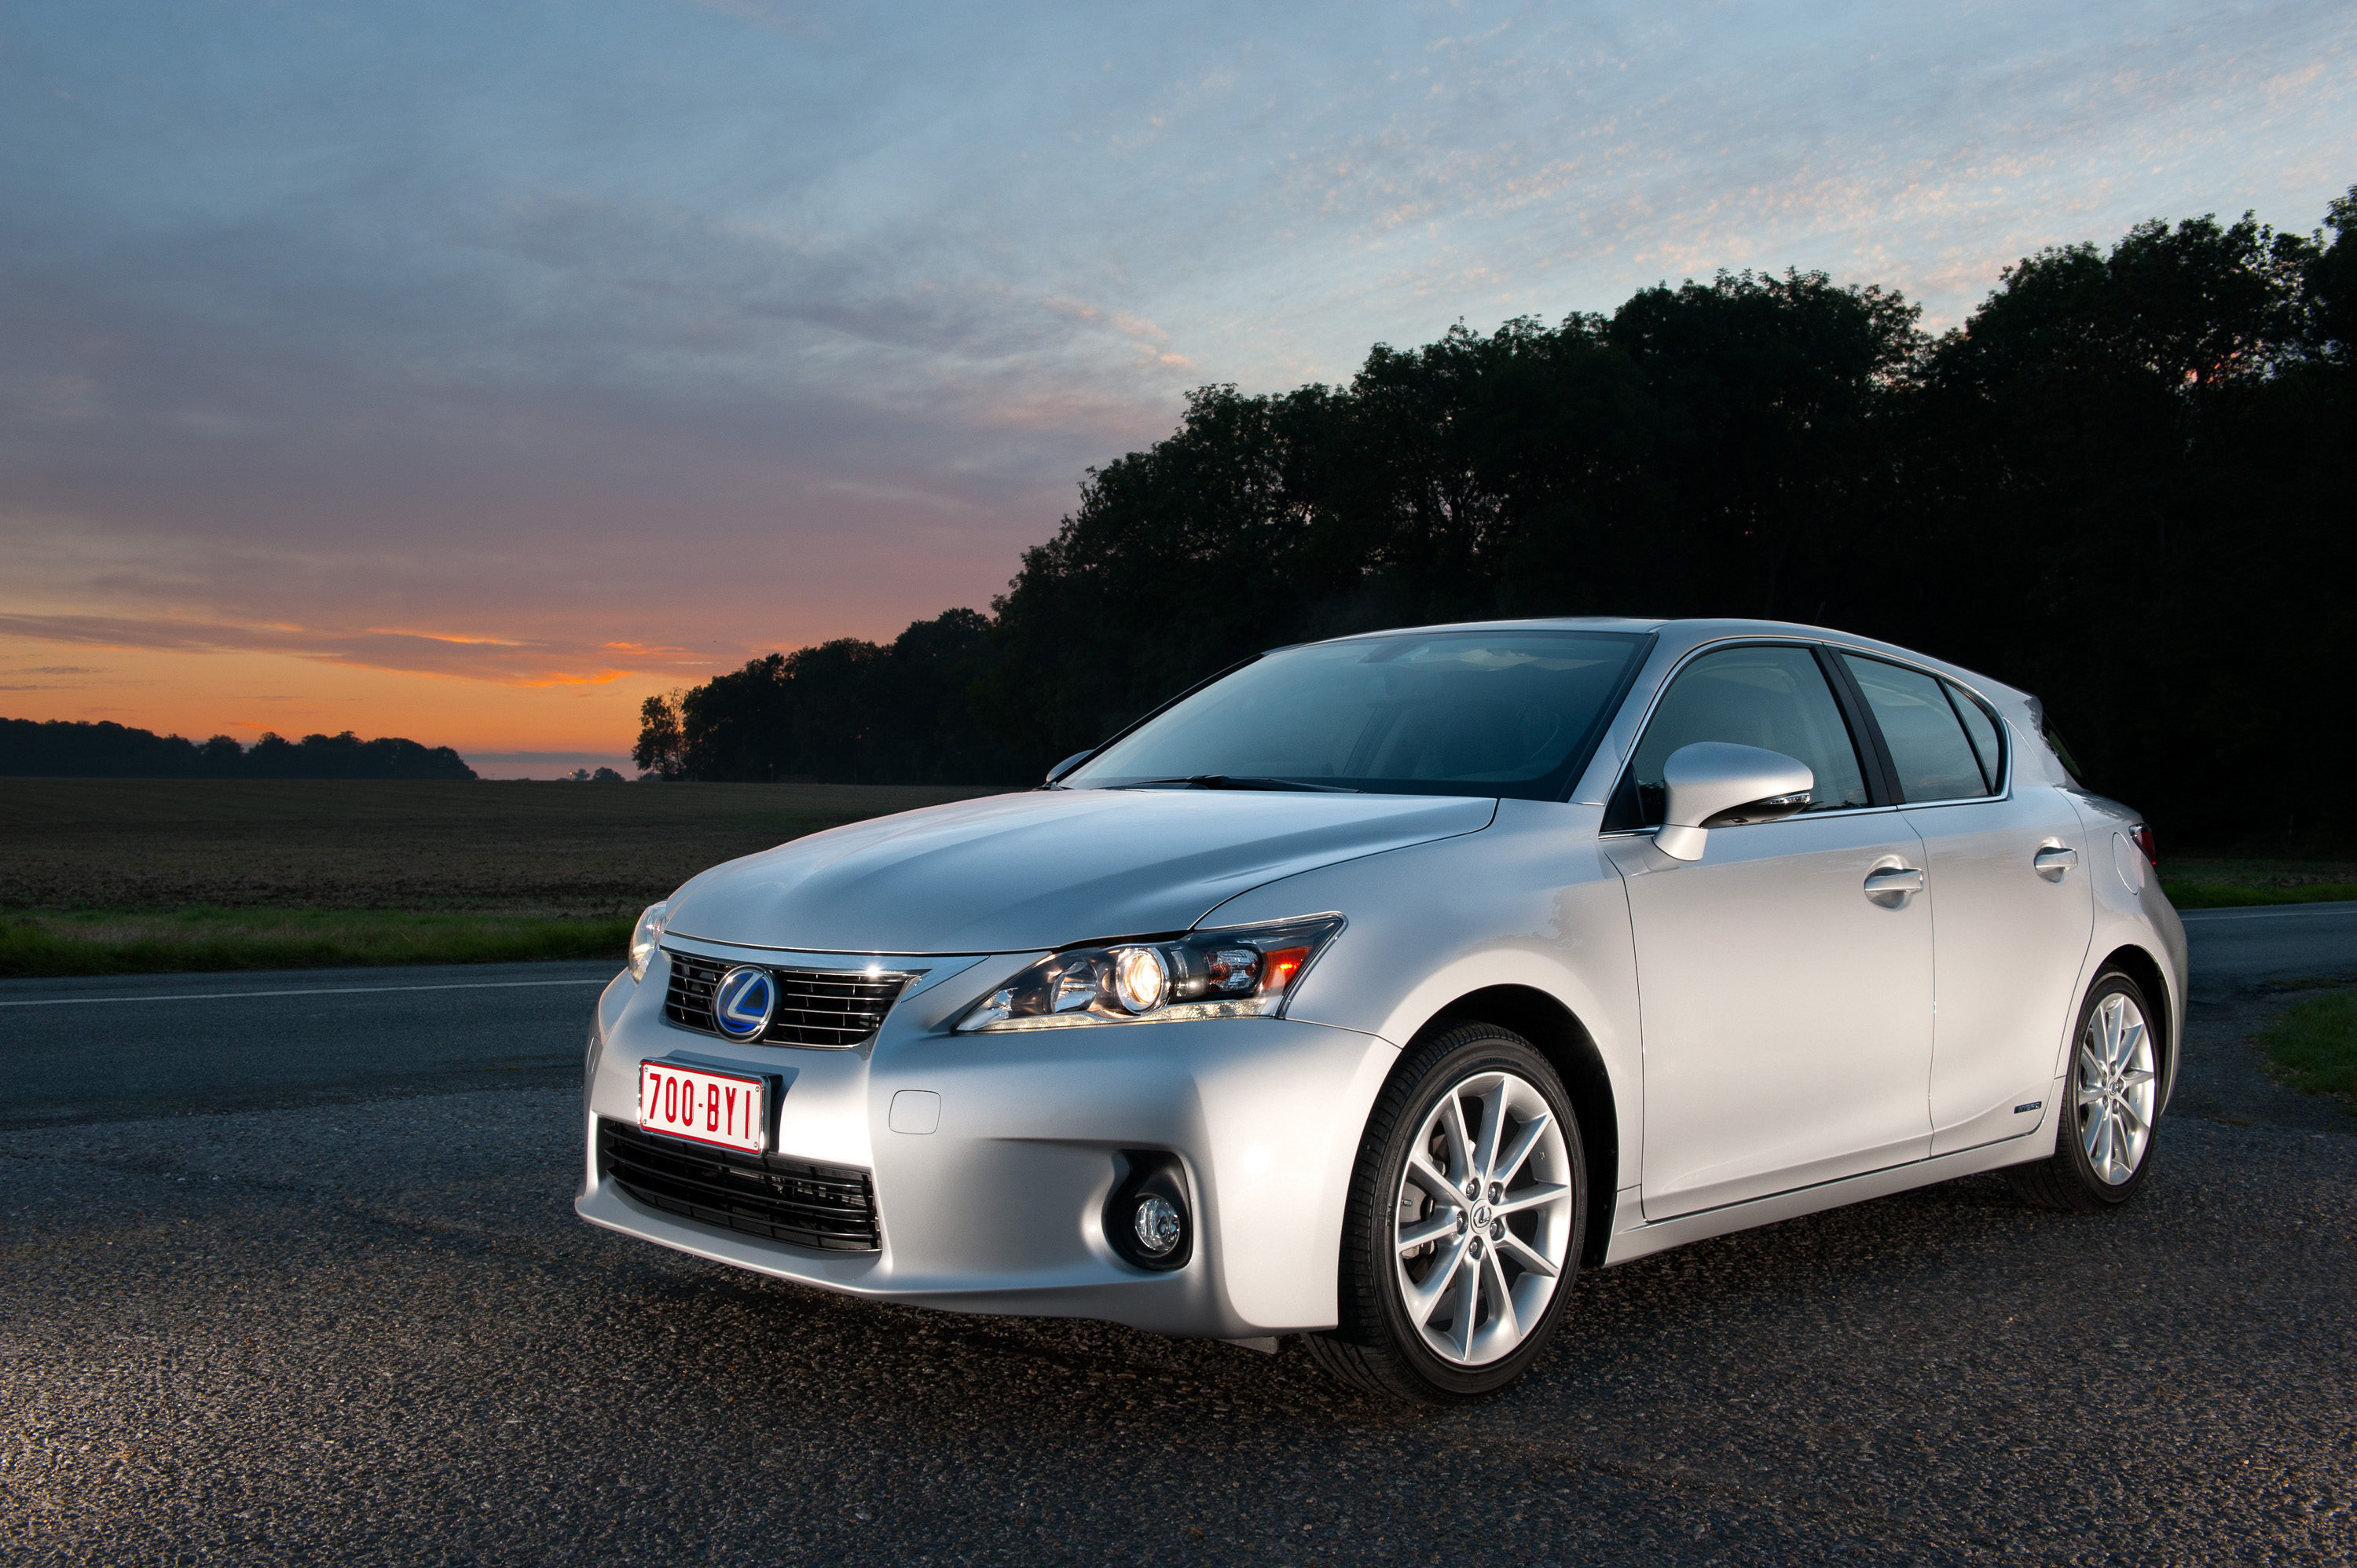 2013 lexus ct 200h review ratings specs prices and photos the car connection. Black Bedroom Furniture Sets. Home Design Ideas